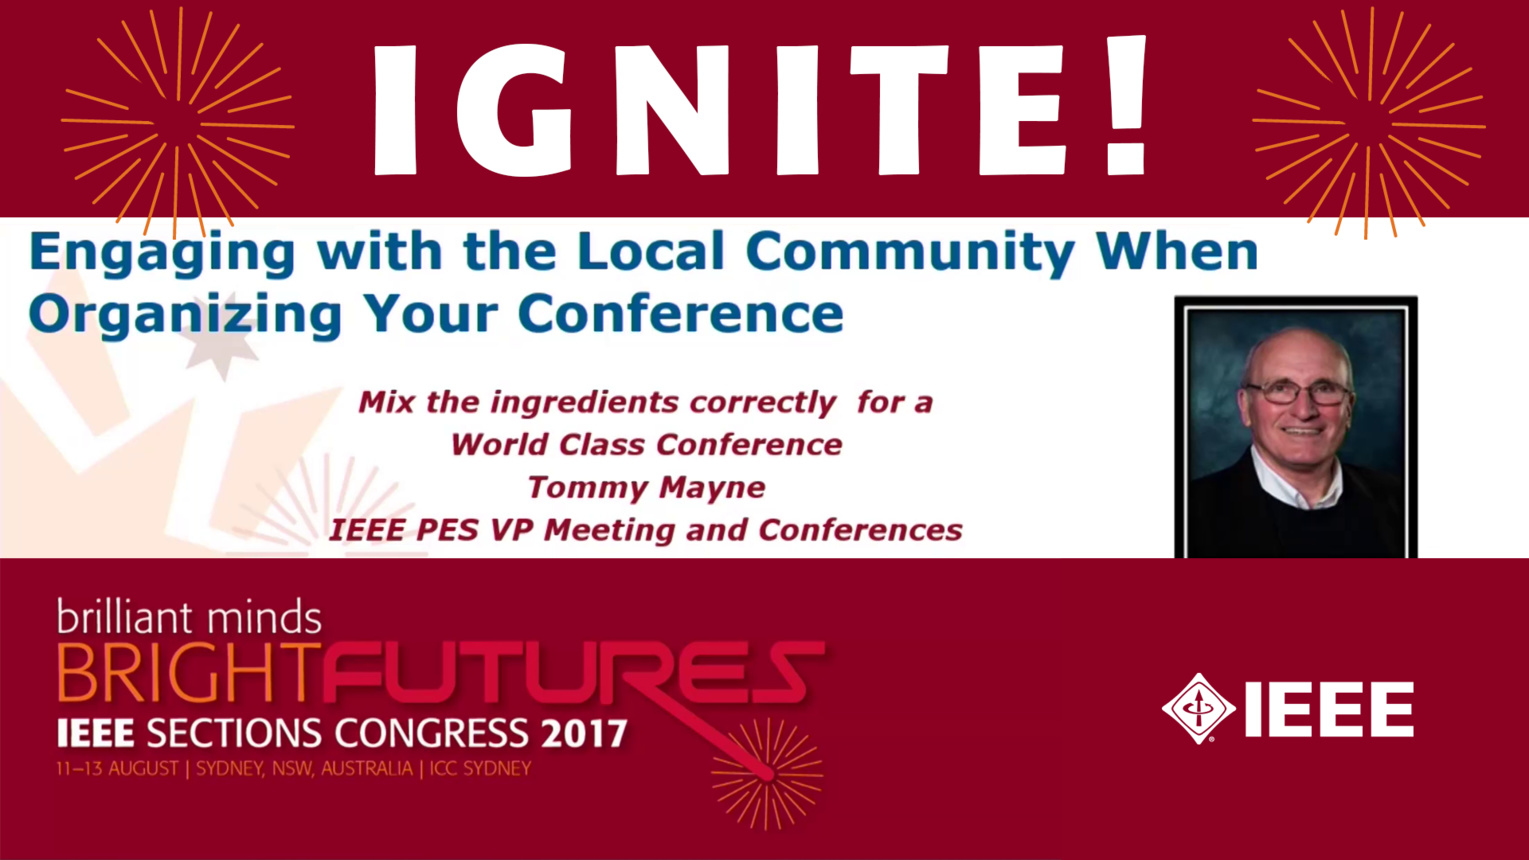 Organizing Conferences: Engage with the Local Community - Tommy Mayne - Ignite: Sections Congress 2017